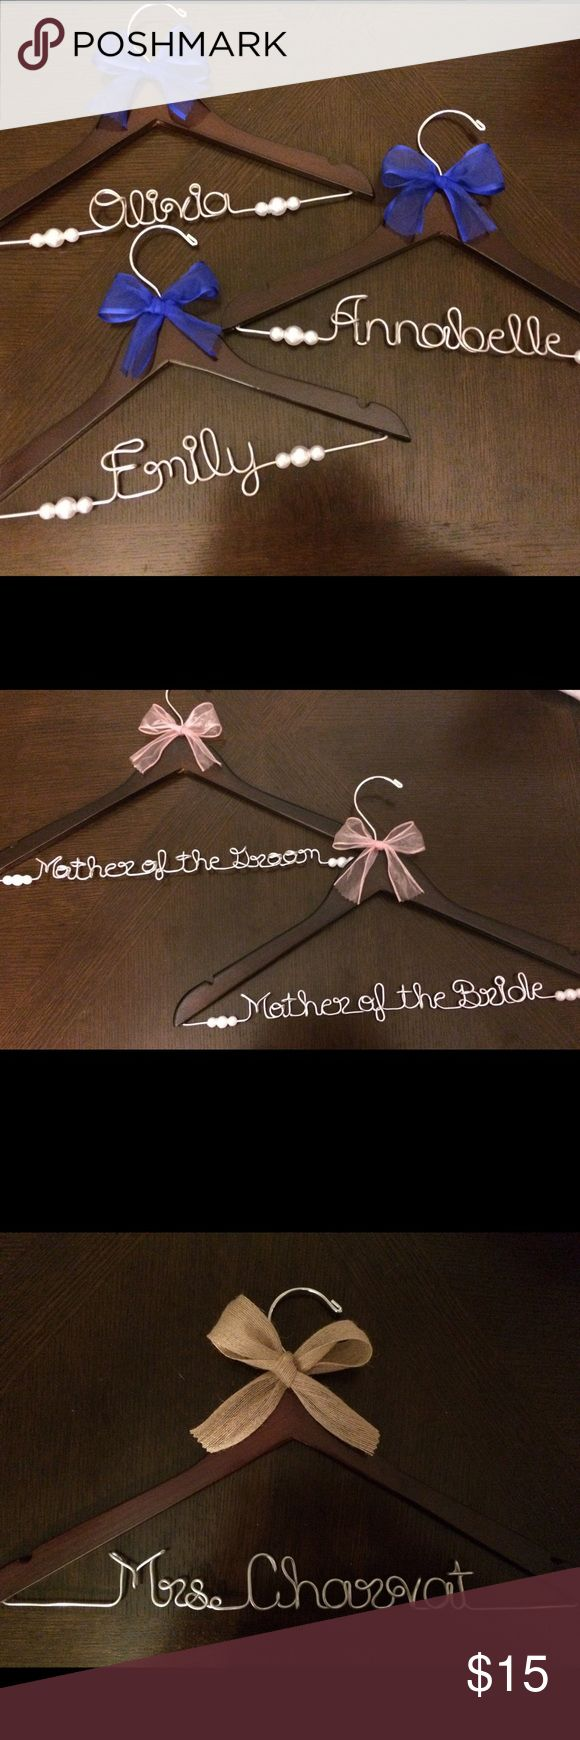 Personalized Wedding Wire Name Hangers! Personalized Wedding Hanger!!!   Don't forget a personalized hanger to show off your gorgeous wedding gown! I can custom design a hanger for the bride, bridesmaids, flower girl, or other members of the wedding party. (The total letters per hanger must be under 16 letters including spaces.) Buy 2+ for 10% off & $6 shipping!  Leave a note with these details at checkout:  ~Name on Wire ~Color of Ribbon if desired (I have most colors of ribbons, message me…